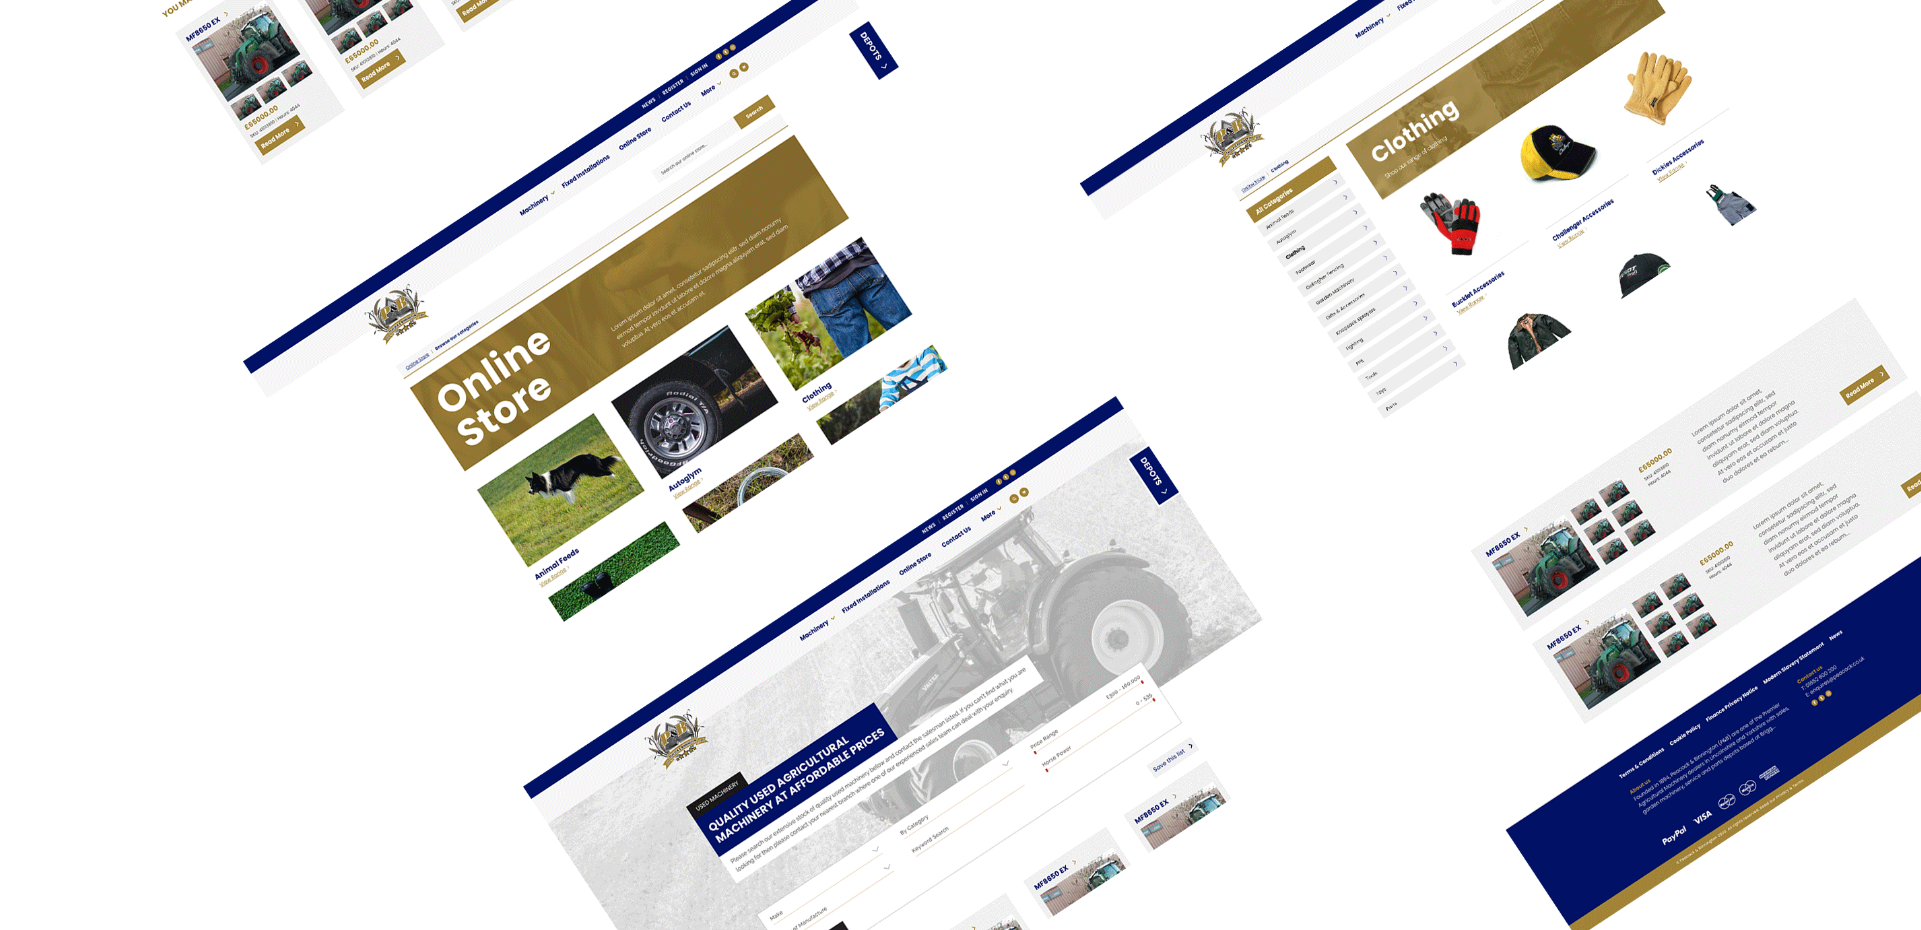 Mock-up showing various pages of the Peacock and Binnington website laid out on a white background. Featured are visuals of their online e-commerce store category pages.